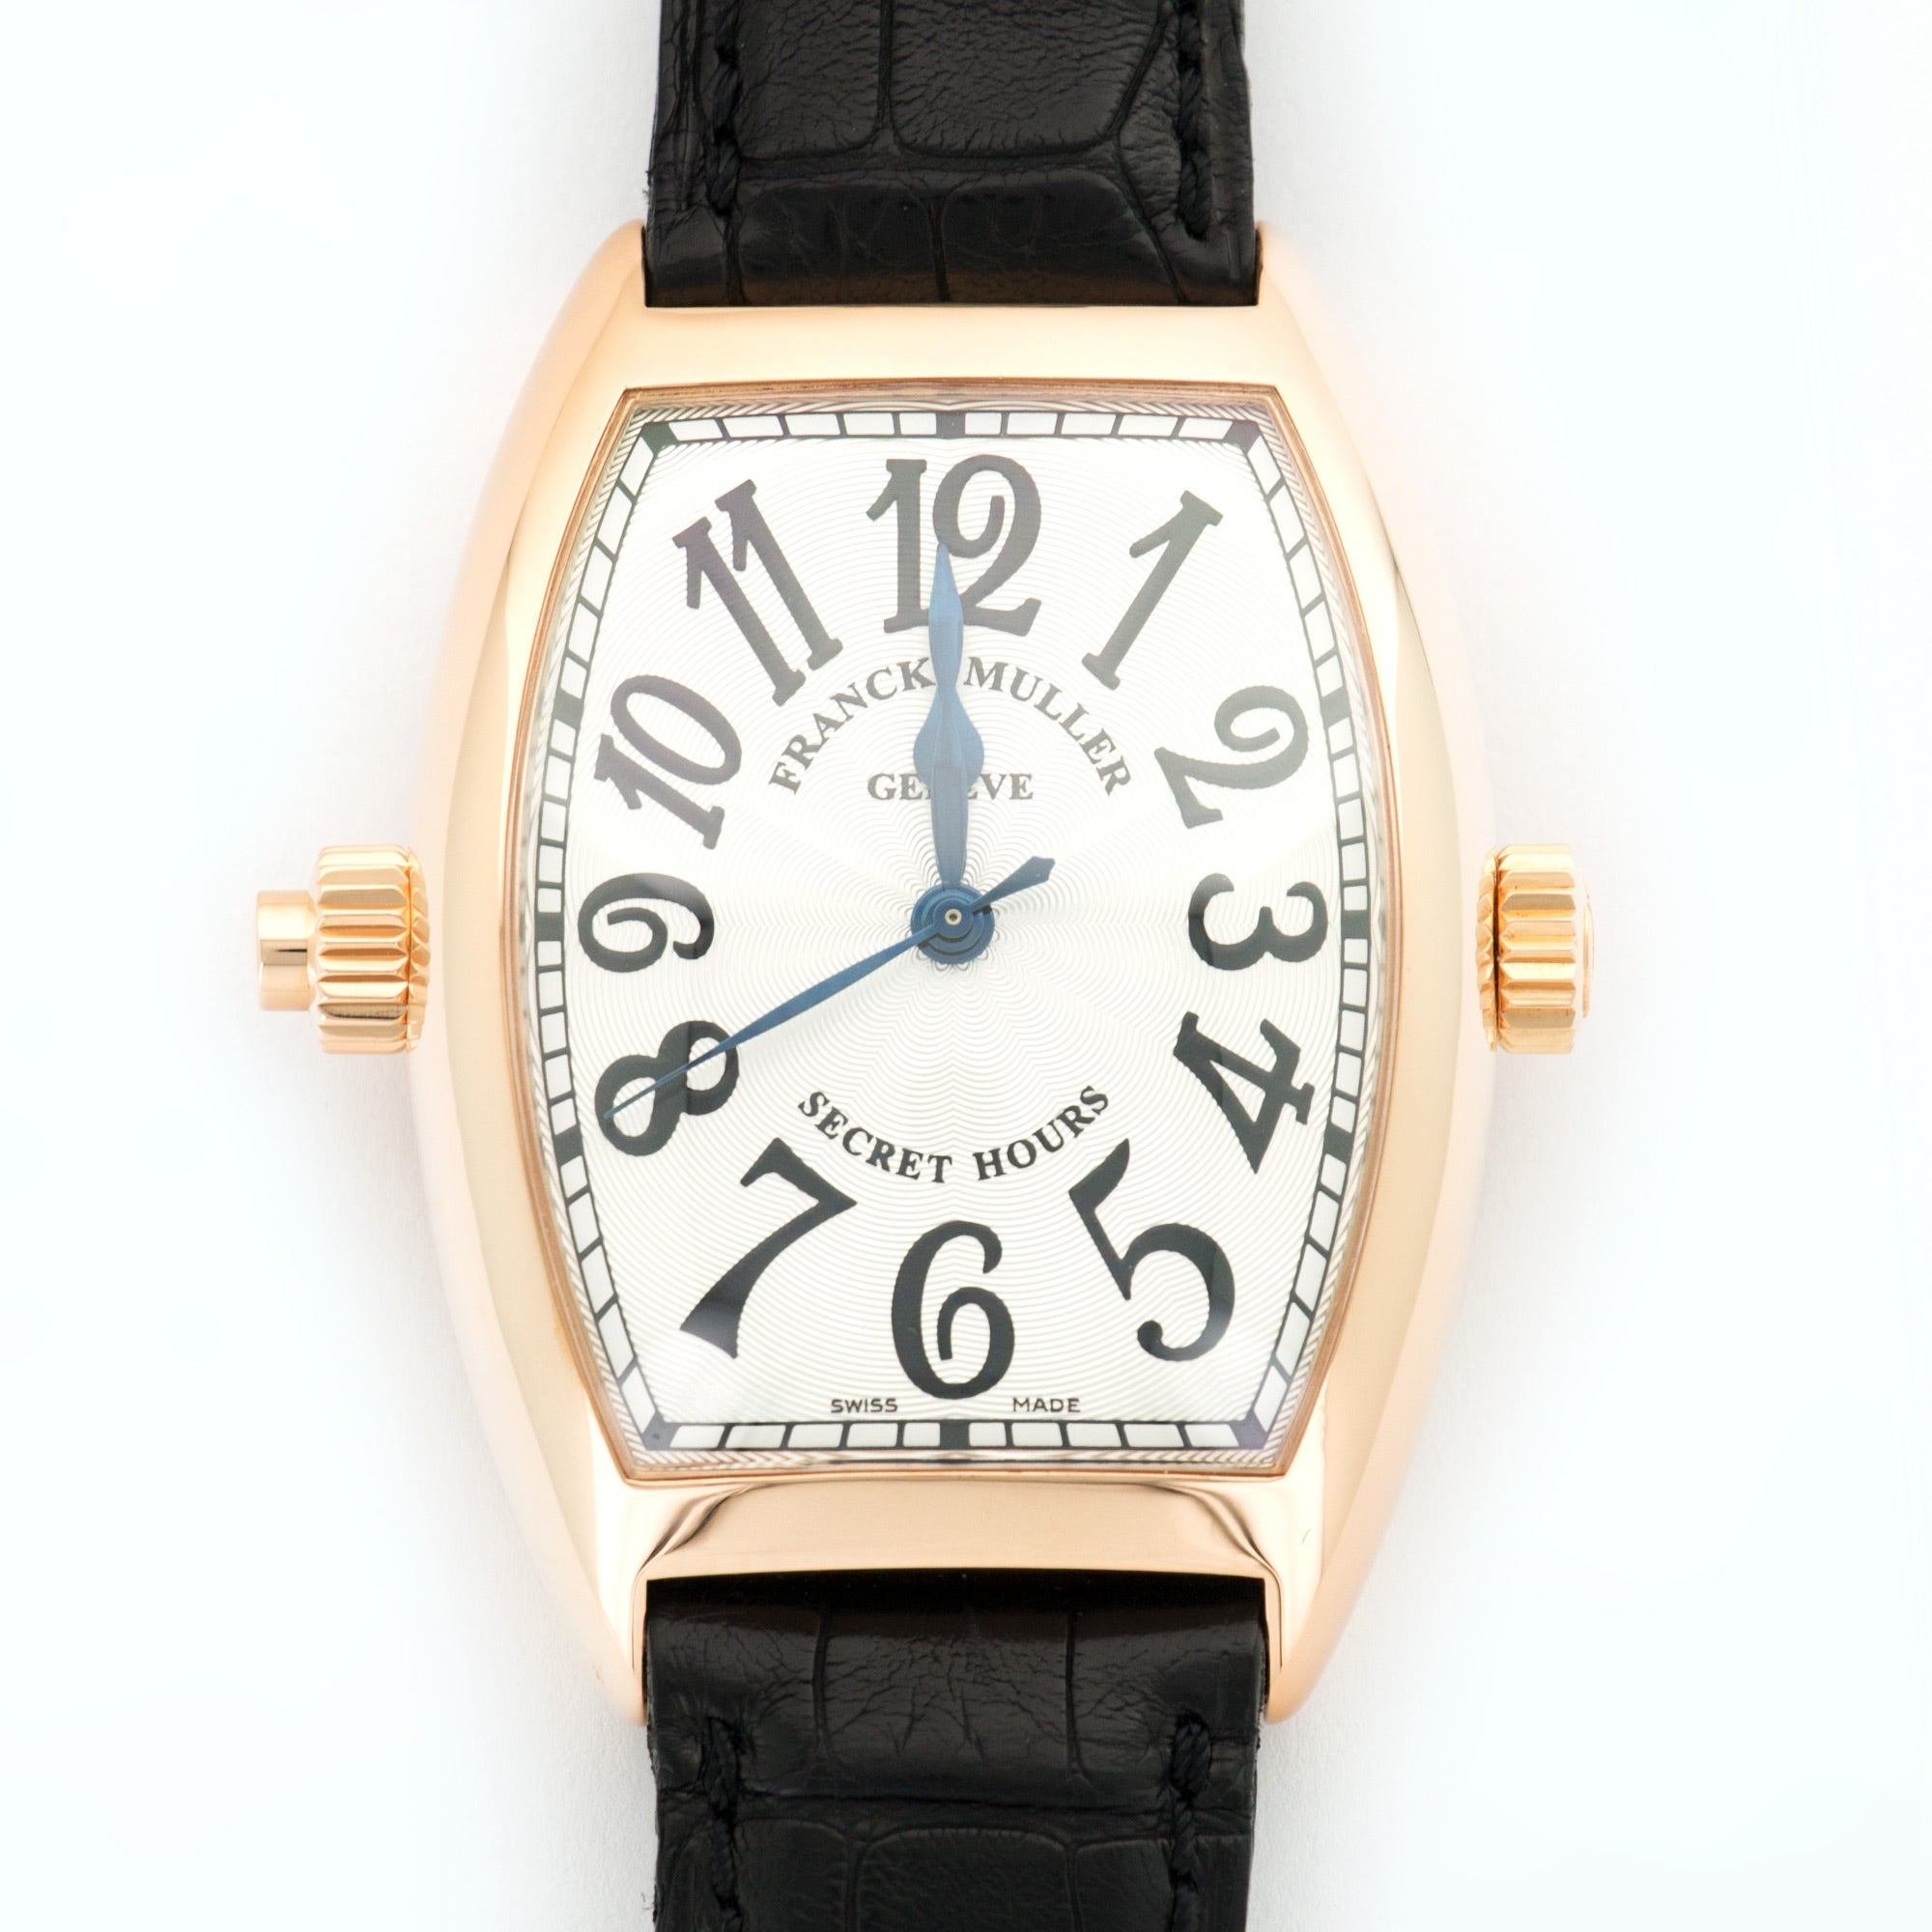 Franck Muller Secret Hours 7880 SE H I 18k RG  Mint Gents 18k RG Silver 36mm X 50mm Automatic Current Black Crocodile B+P